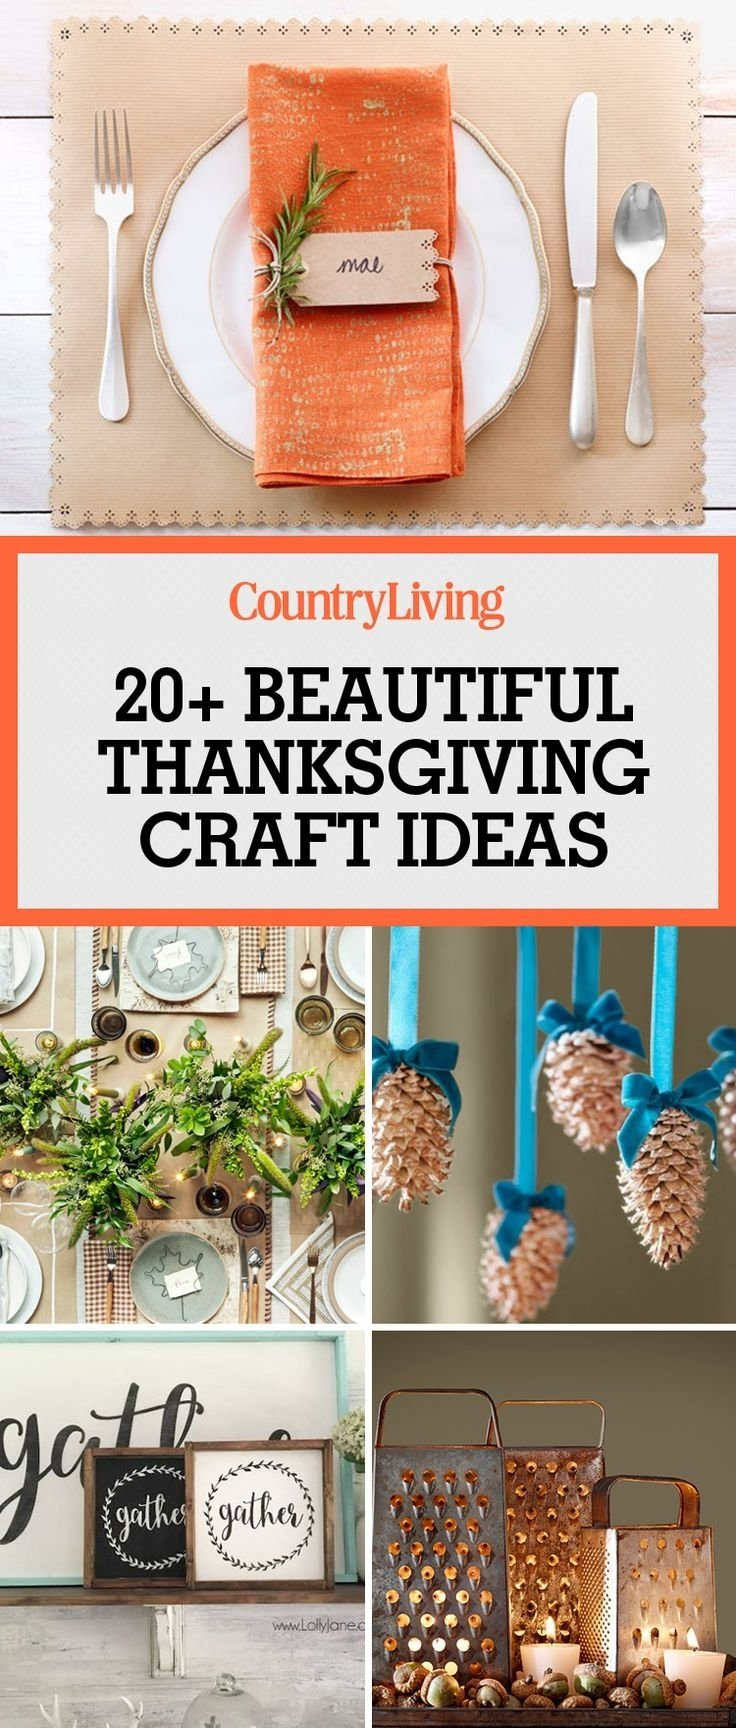 10 Ideal Fall Craft Ideas For The Home 380 best thanksgiving decorating ideas images on pinterest